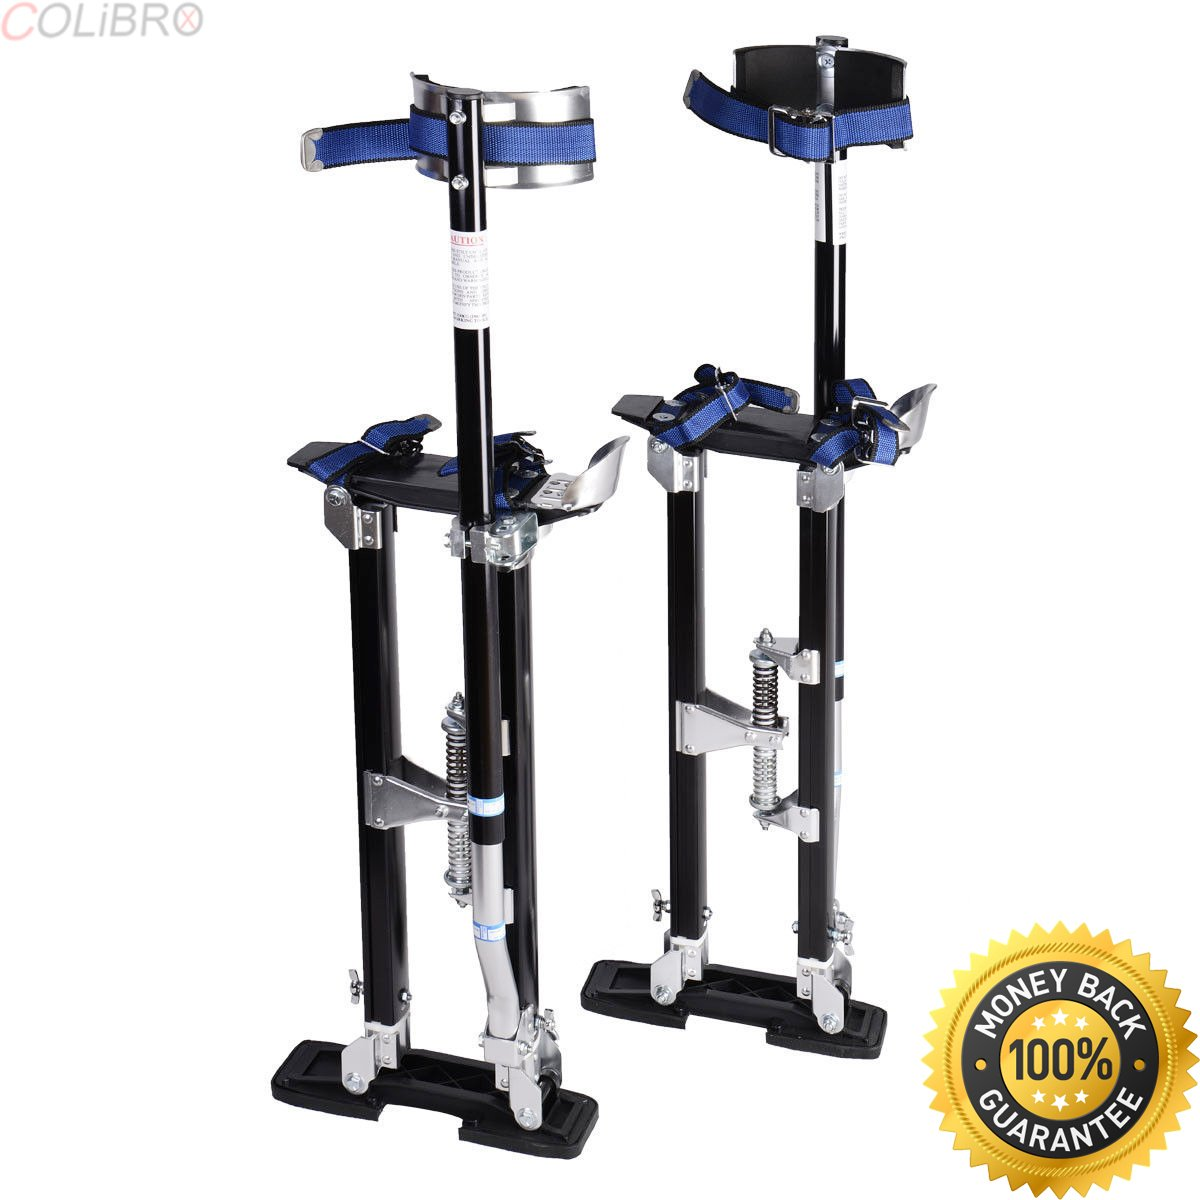 COLIBROX--18-30 Inch Drywall Stilts Aluminum Tool Painters Walking Taping Finishing Black. working on stilts. plasterers stilts health and safety. osha rules on stilts. harbor freight drywall stilts.